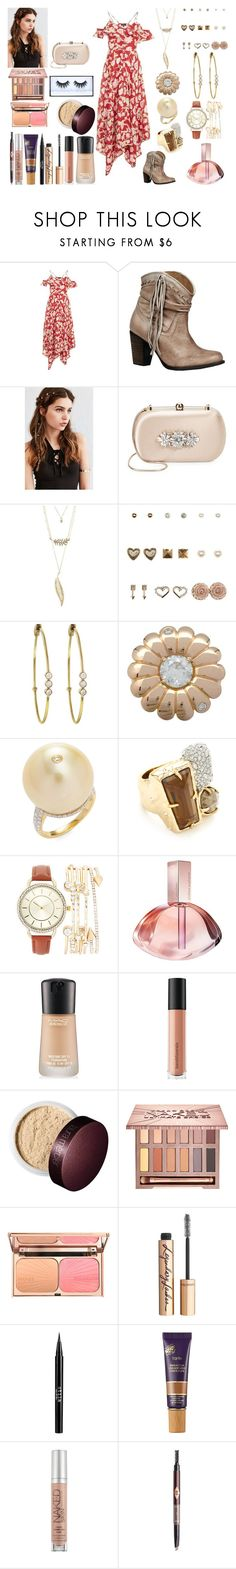 """""""Untitled #1187"""" by asiebenthaler ❤ liked on Polyvore featuring Topshop, Naughty Monkey, REGALROSE, Badgley Mischka, Charlotte Russe, Jennifer Meyer Jewelry, Tara, Alexis Bittar, Calvin Klein and MAC Cosmetics"""